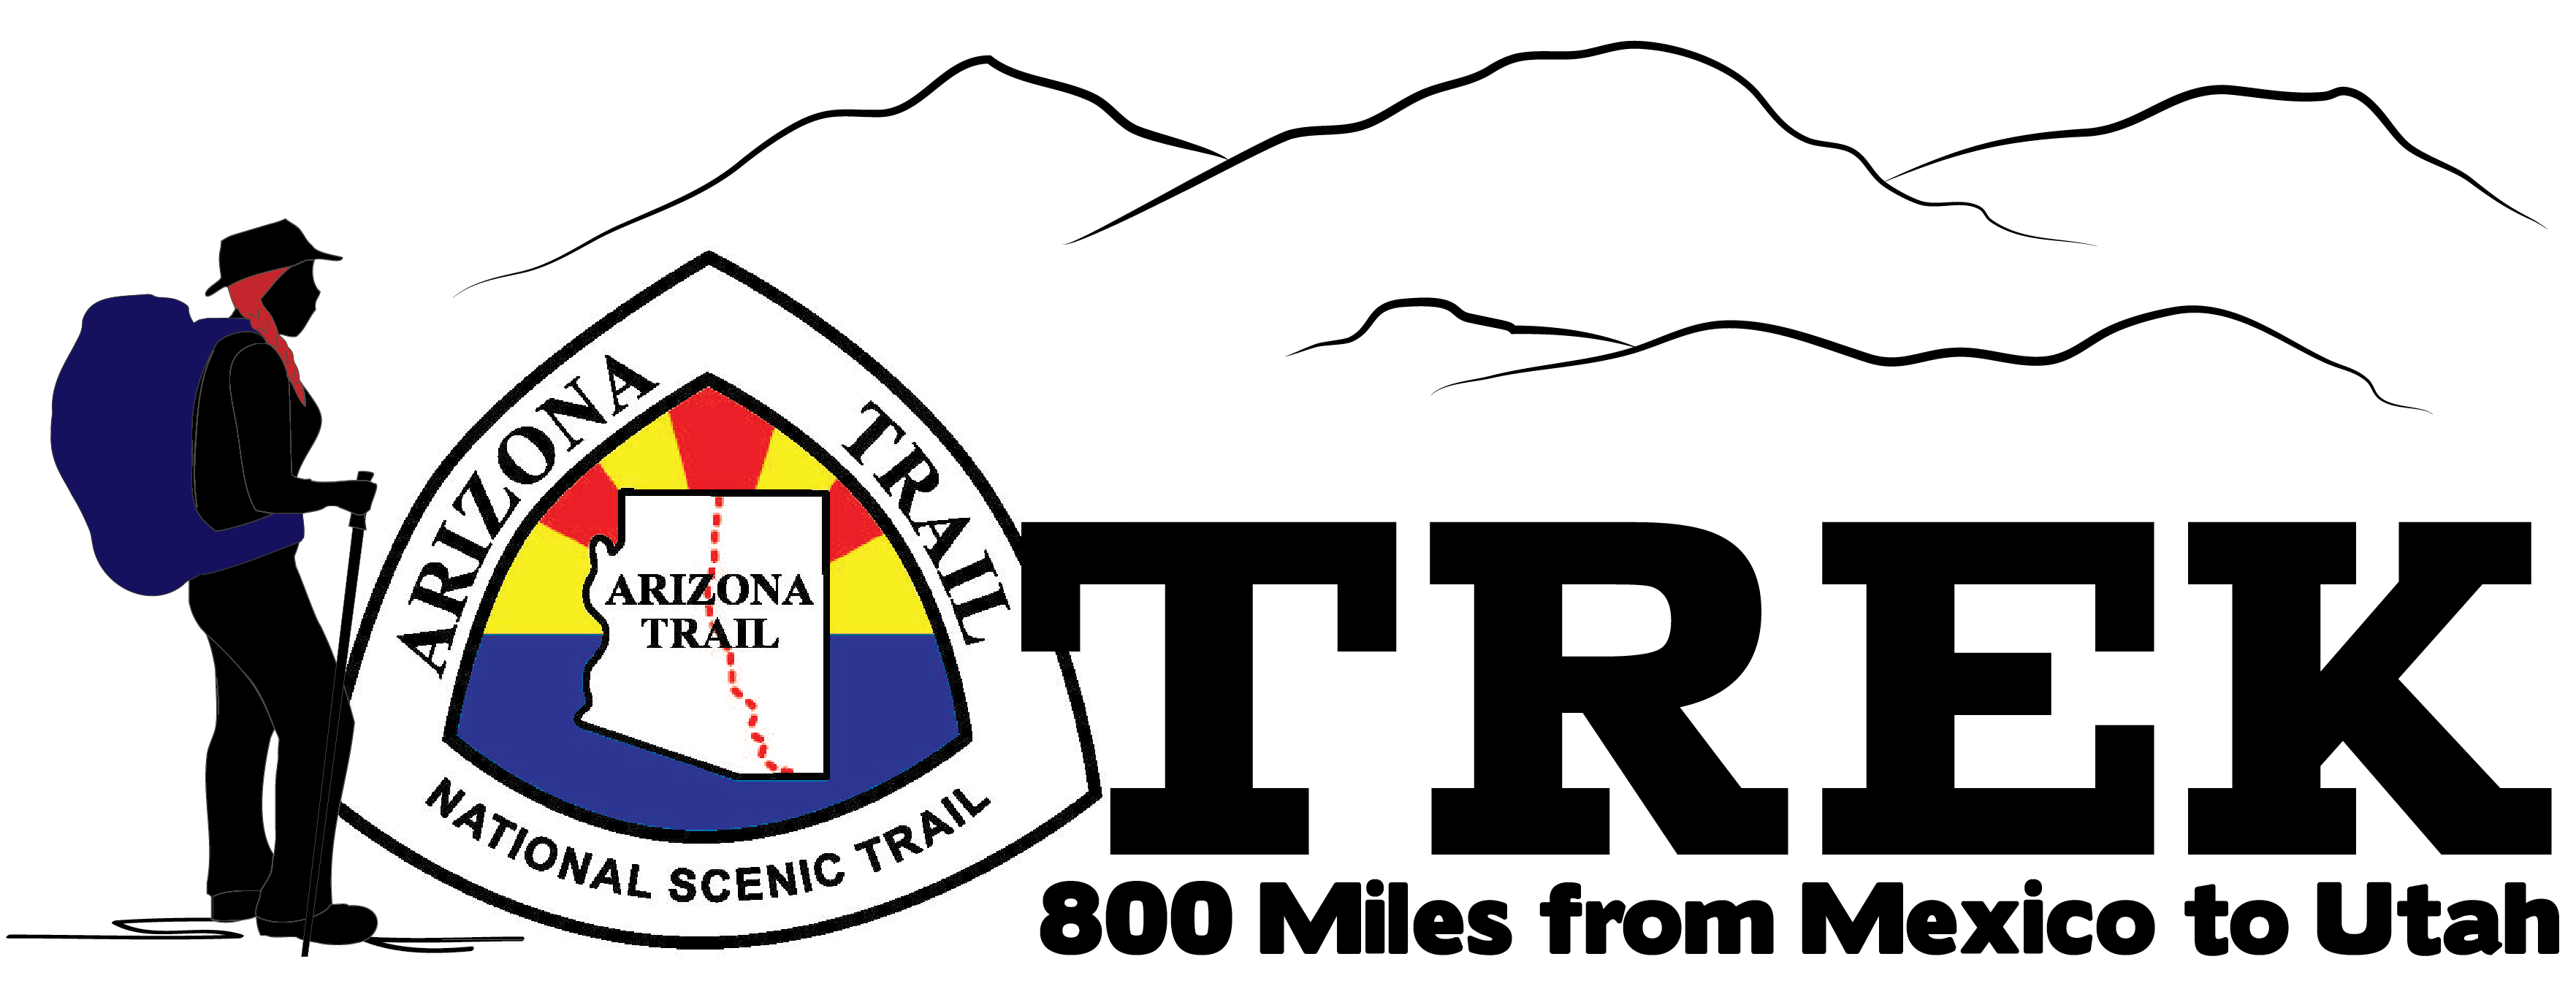 https://desertsirena.files.wordpress.com/2010/05/arizona-trail-trek-logo.png